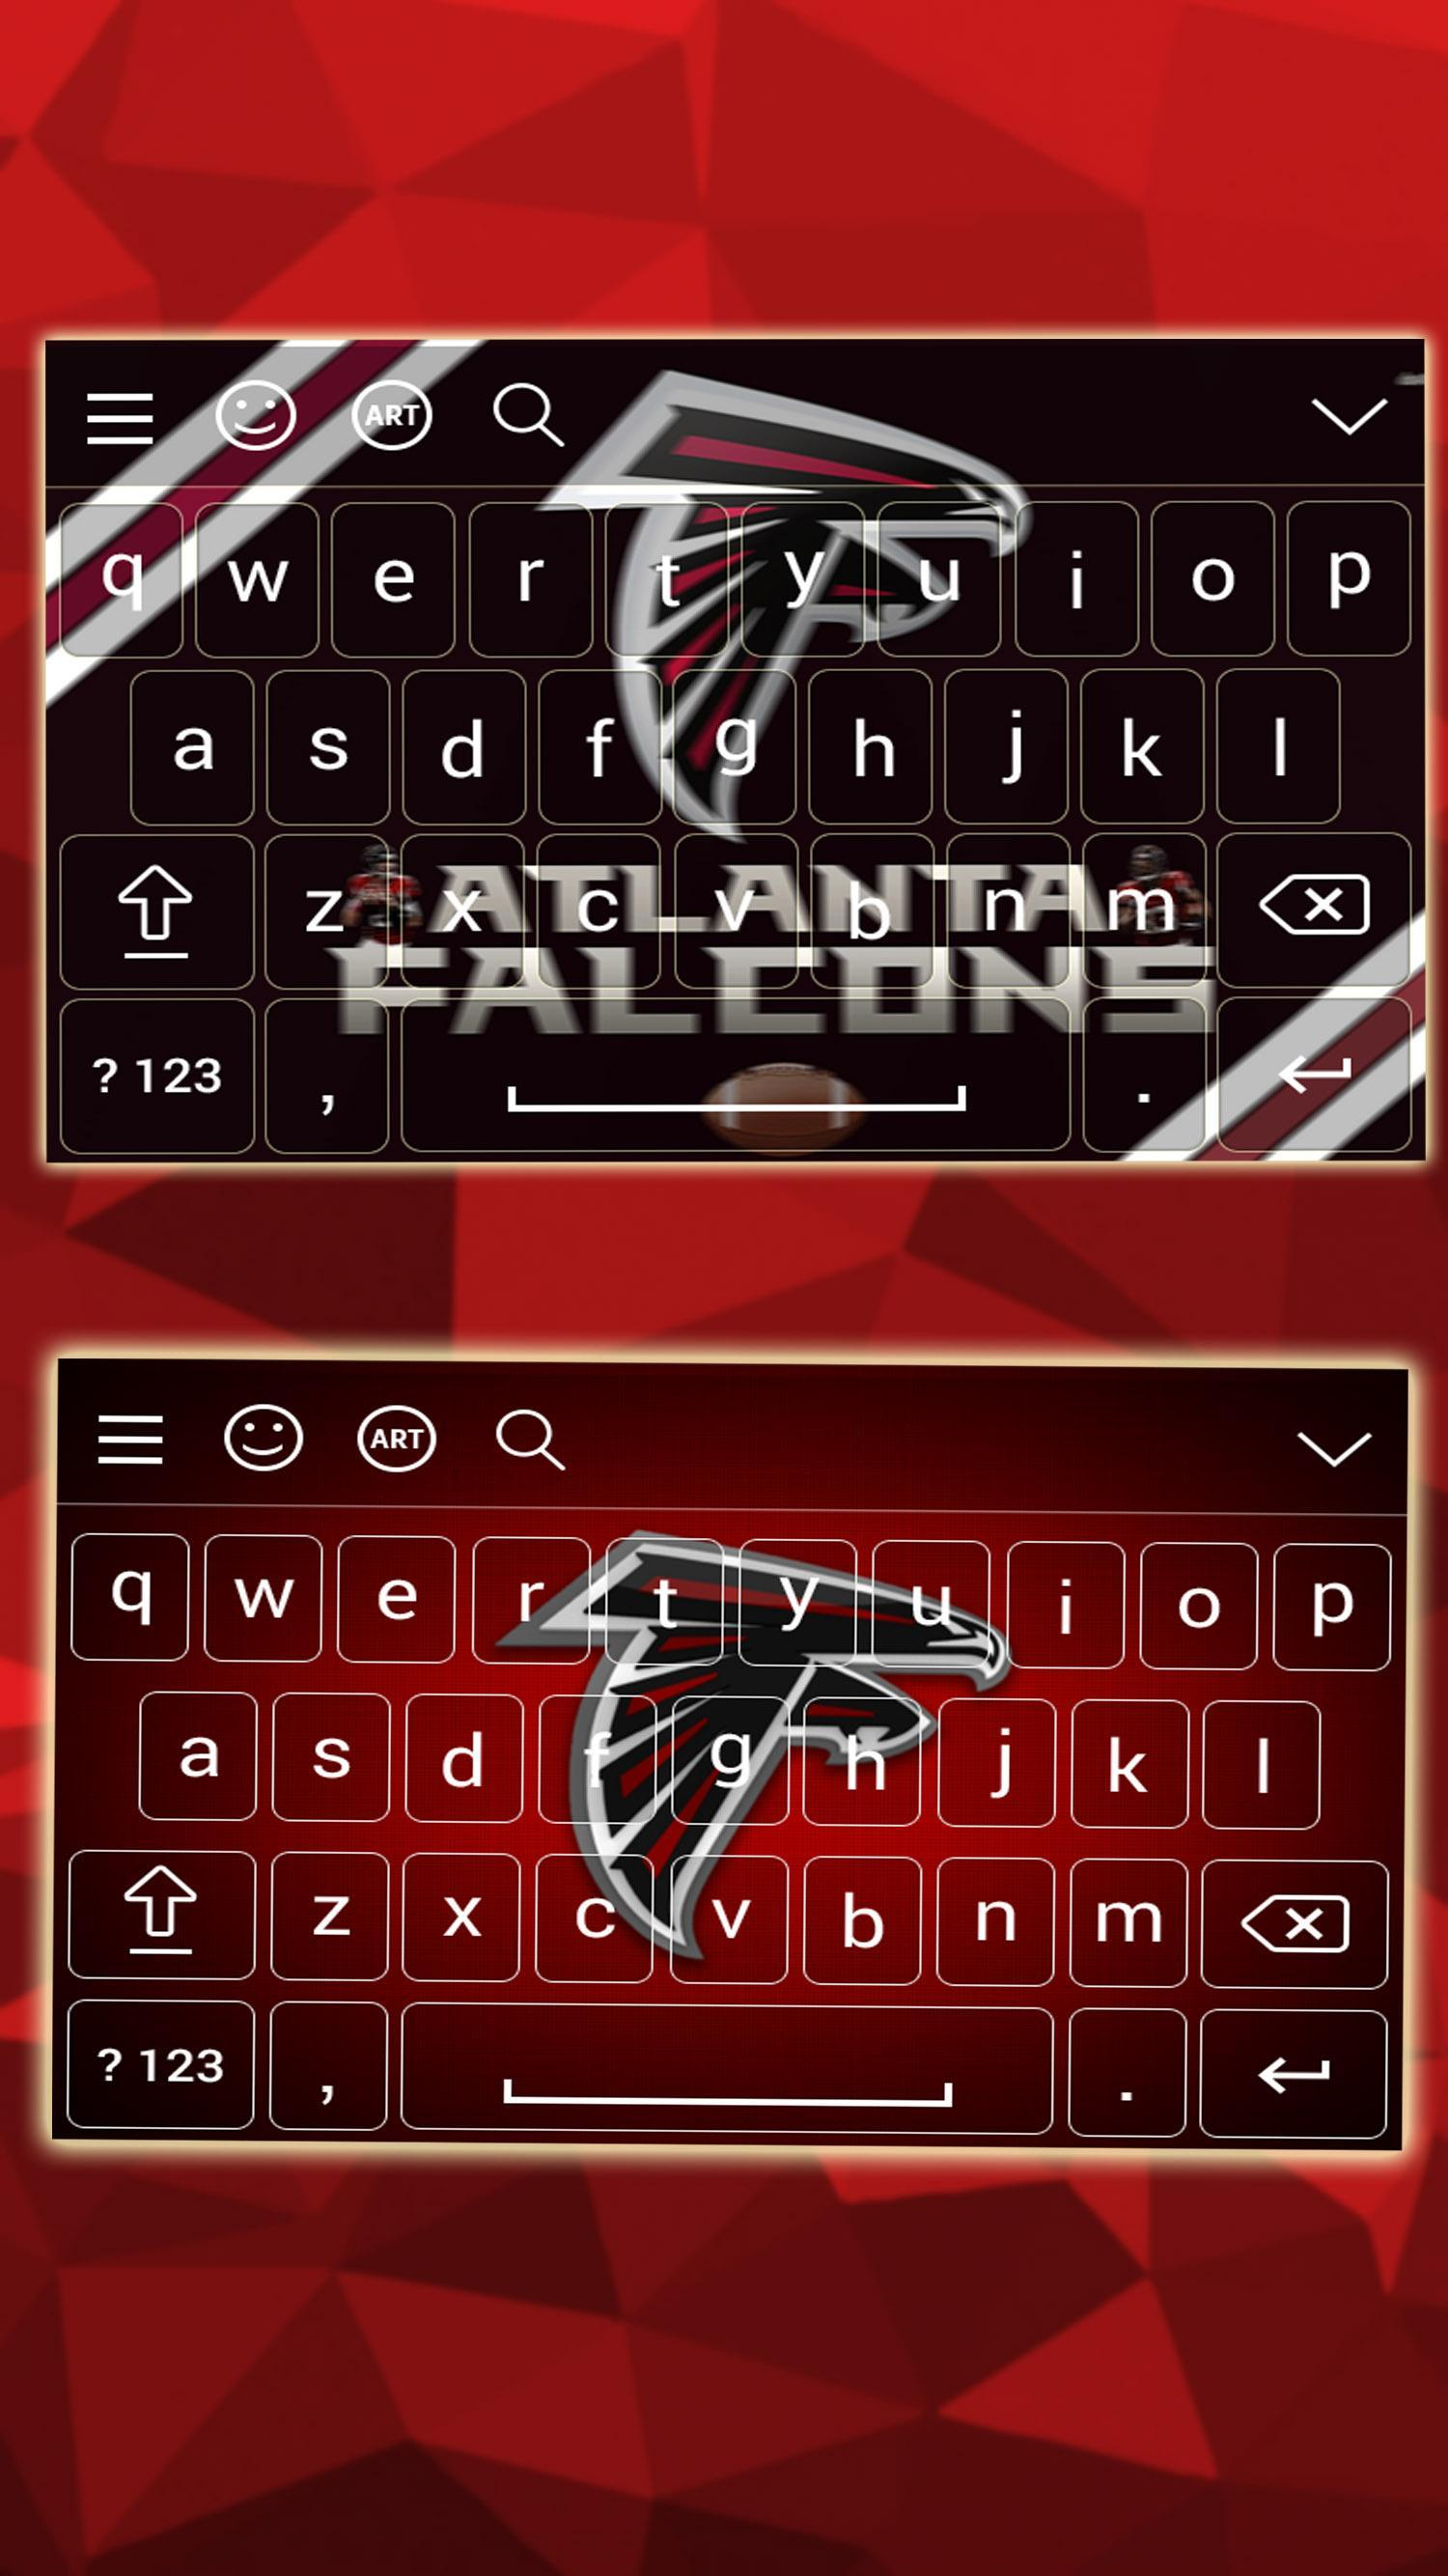 Atlanta Falcons Keyboard Theme For Android Apk Download